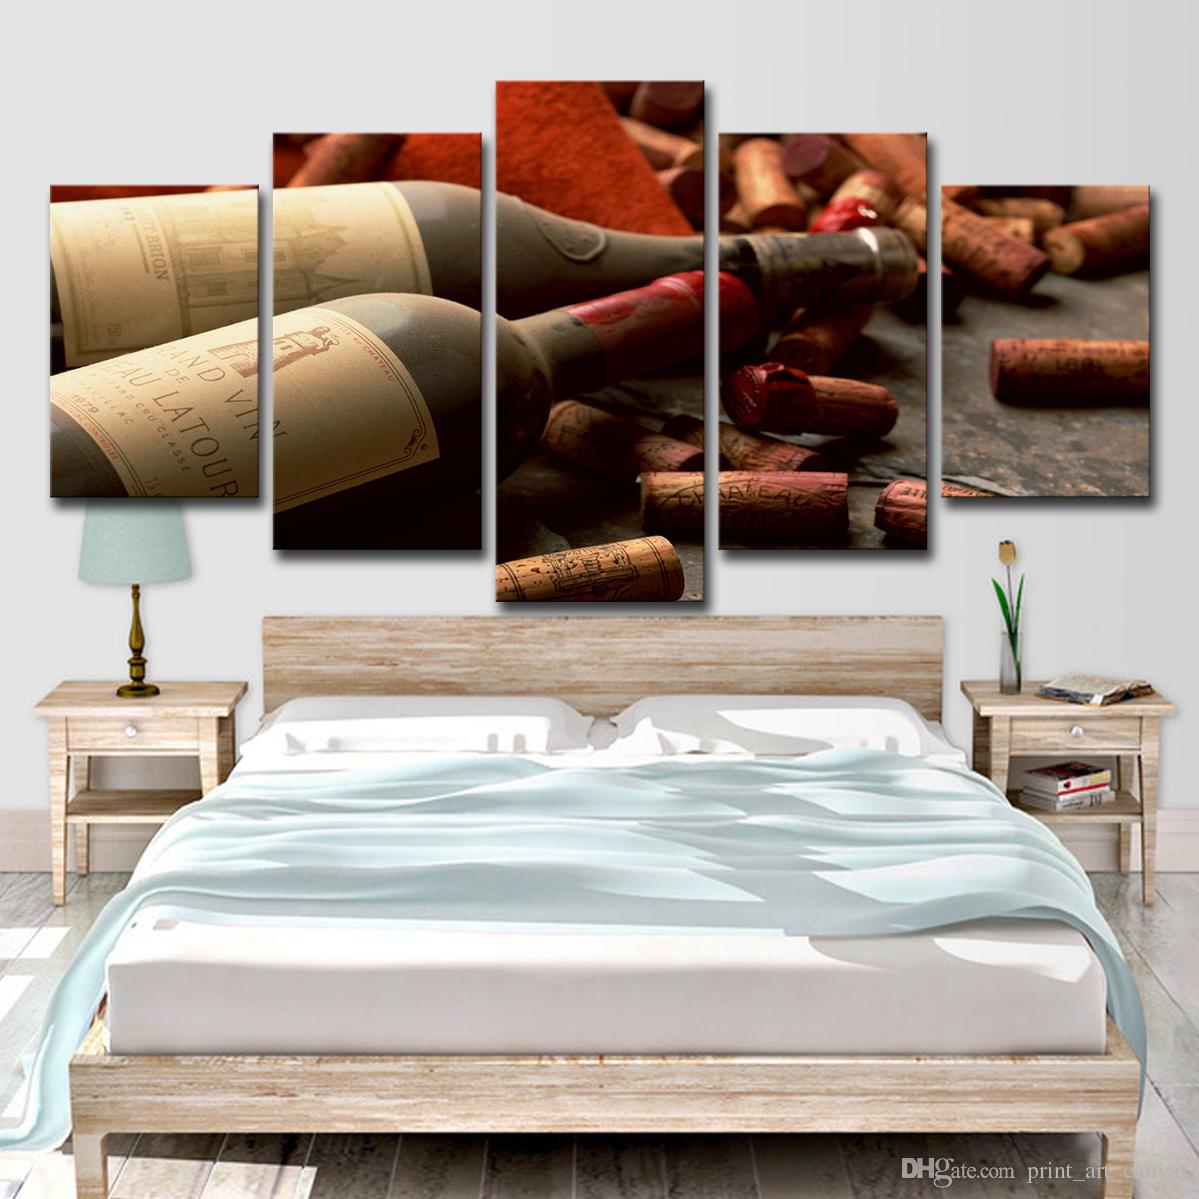 Latour Wall Decor Within Popular 2019 Home Decor Hd Prints Pictures Kitchen Canvas Wall Art Poster (View 18 of 20)